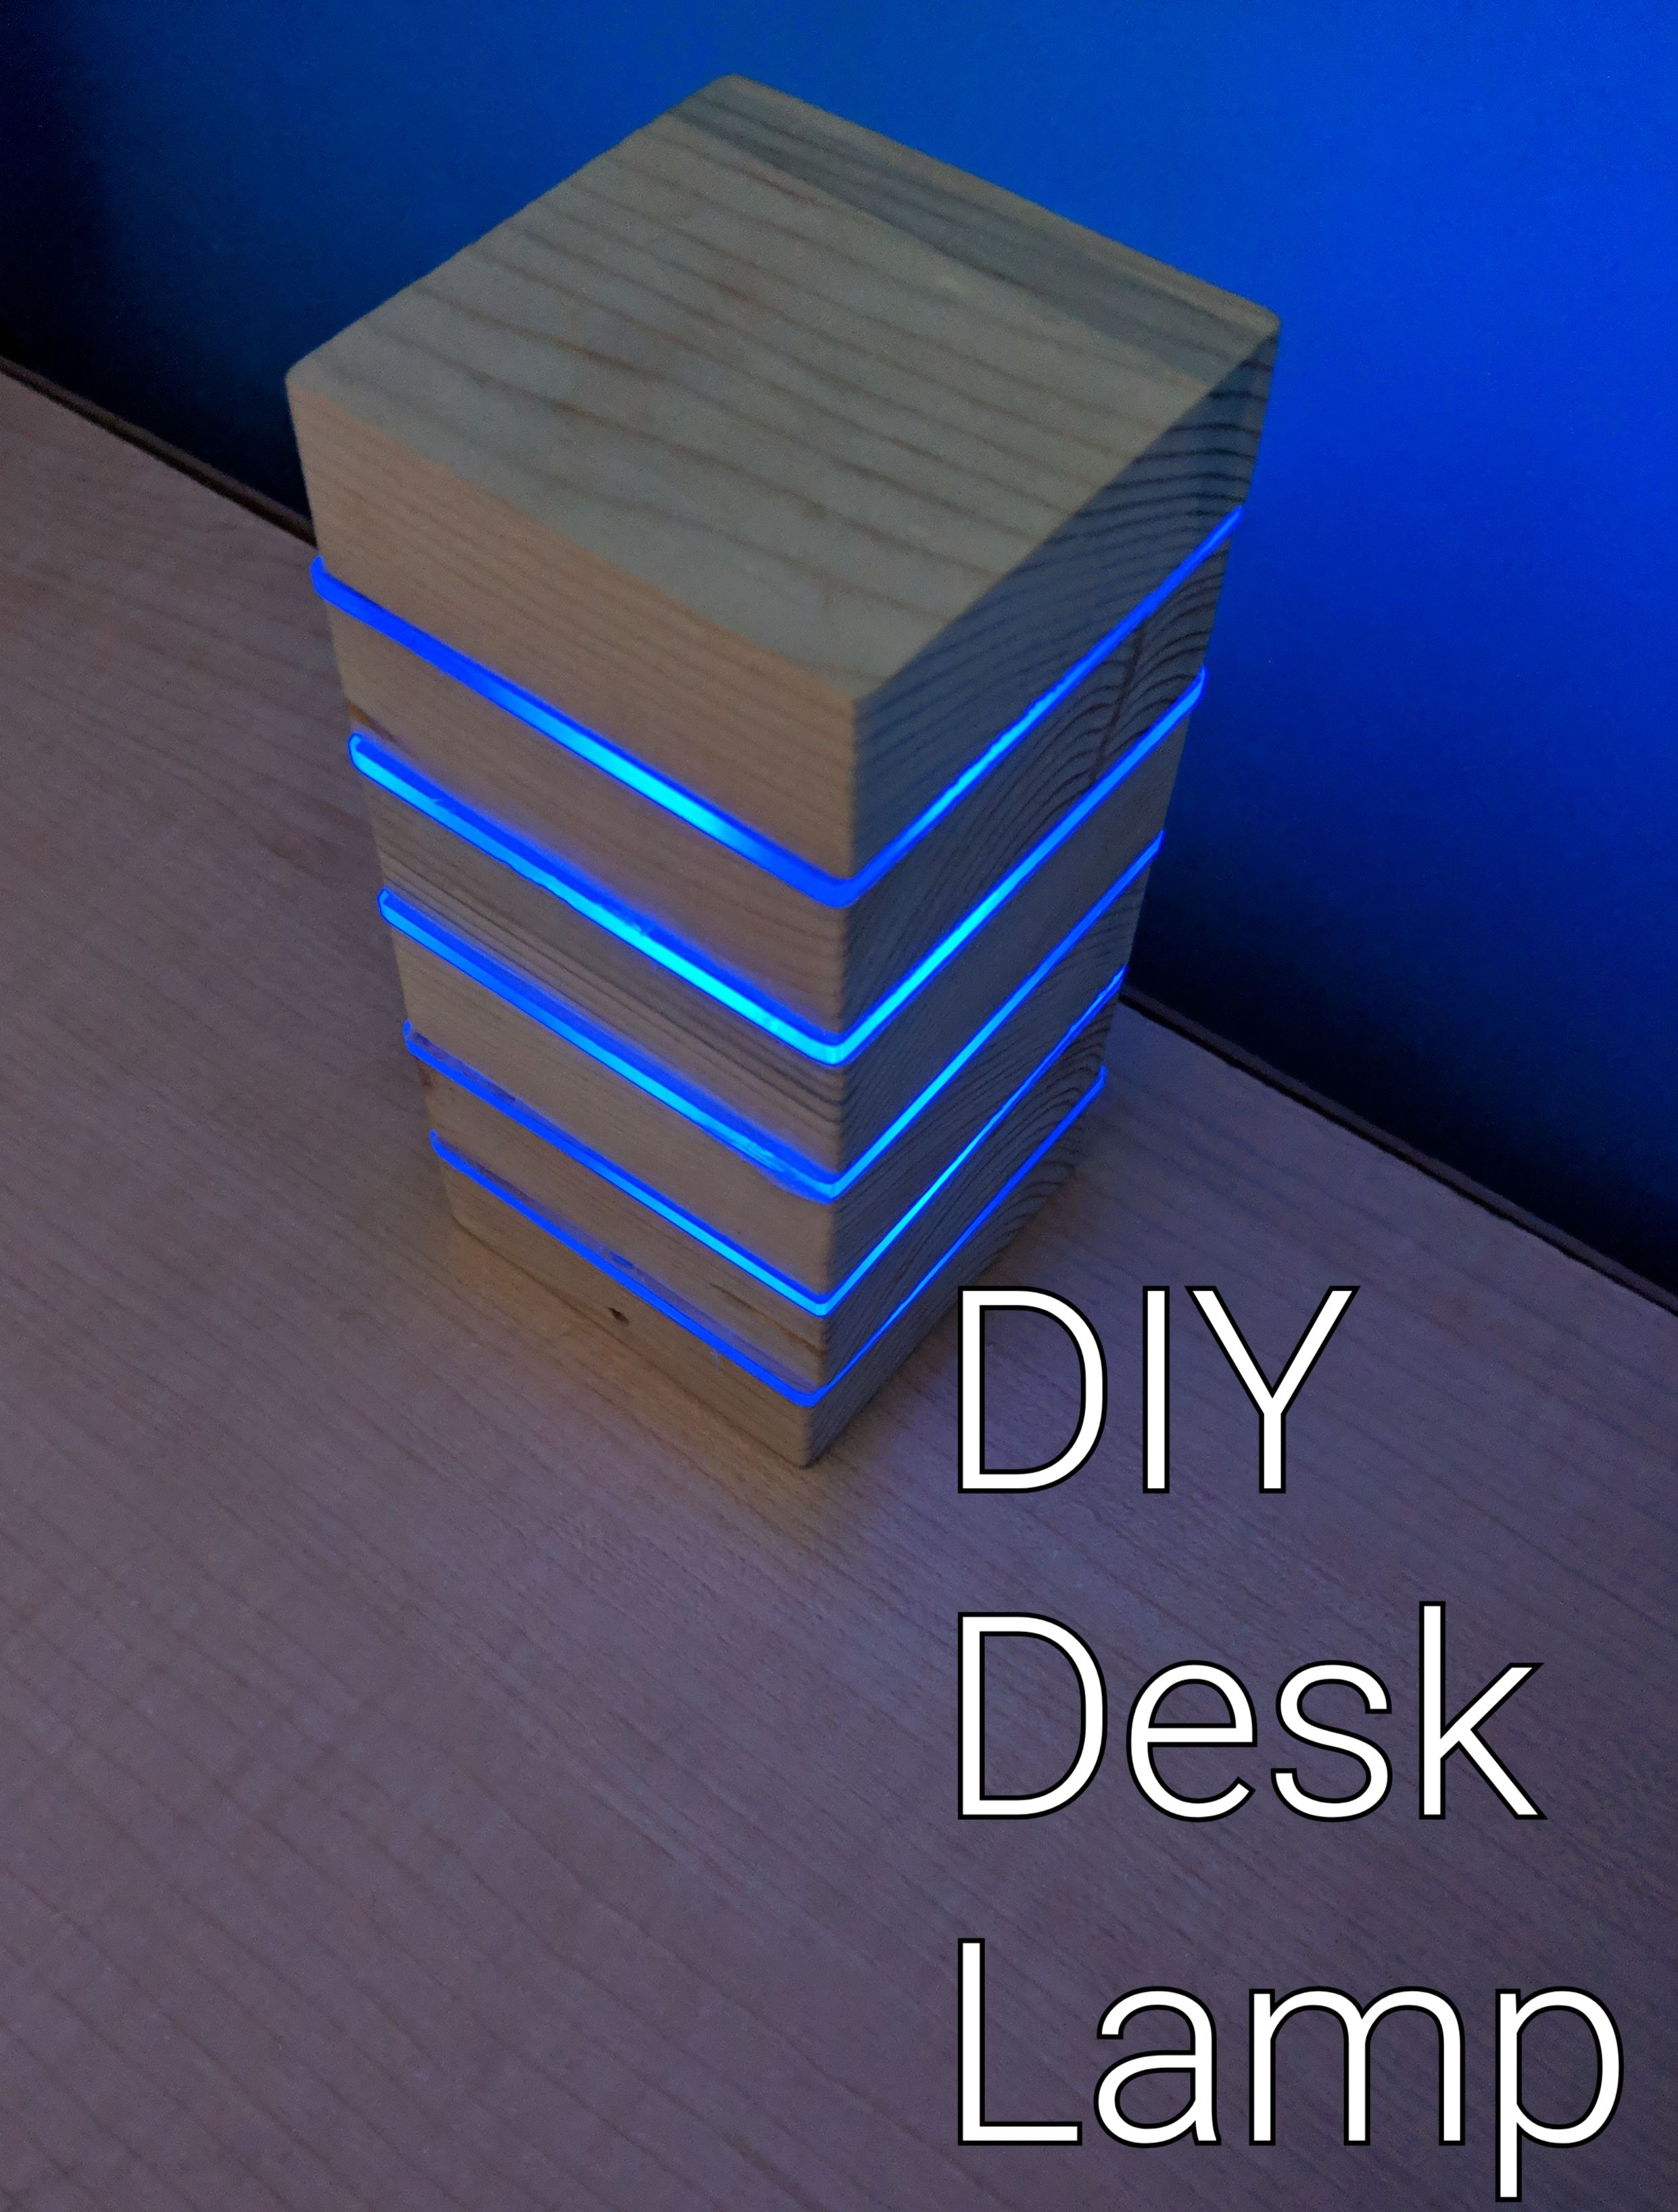 DIY Led Desk Lamp Made From Recycled Pallets | Led lighting